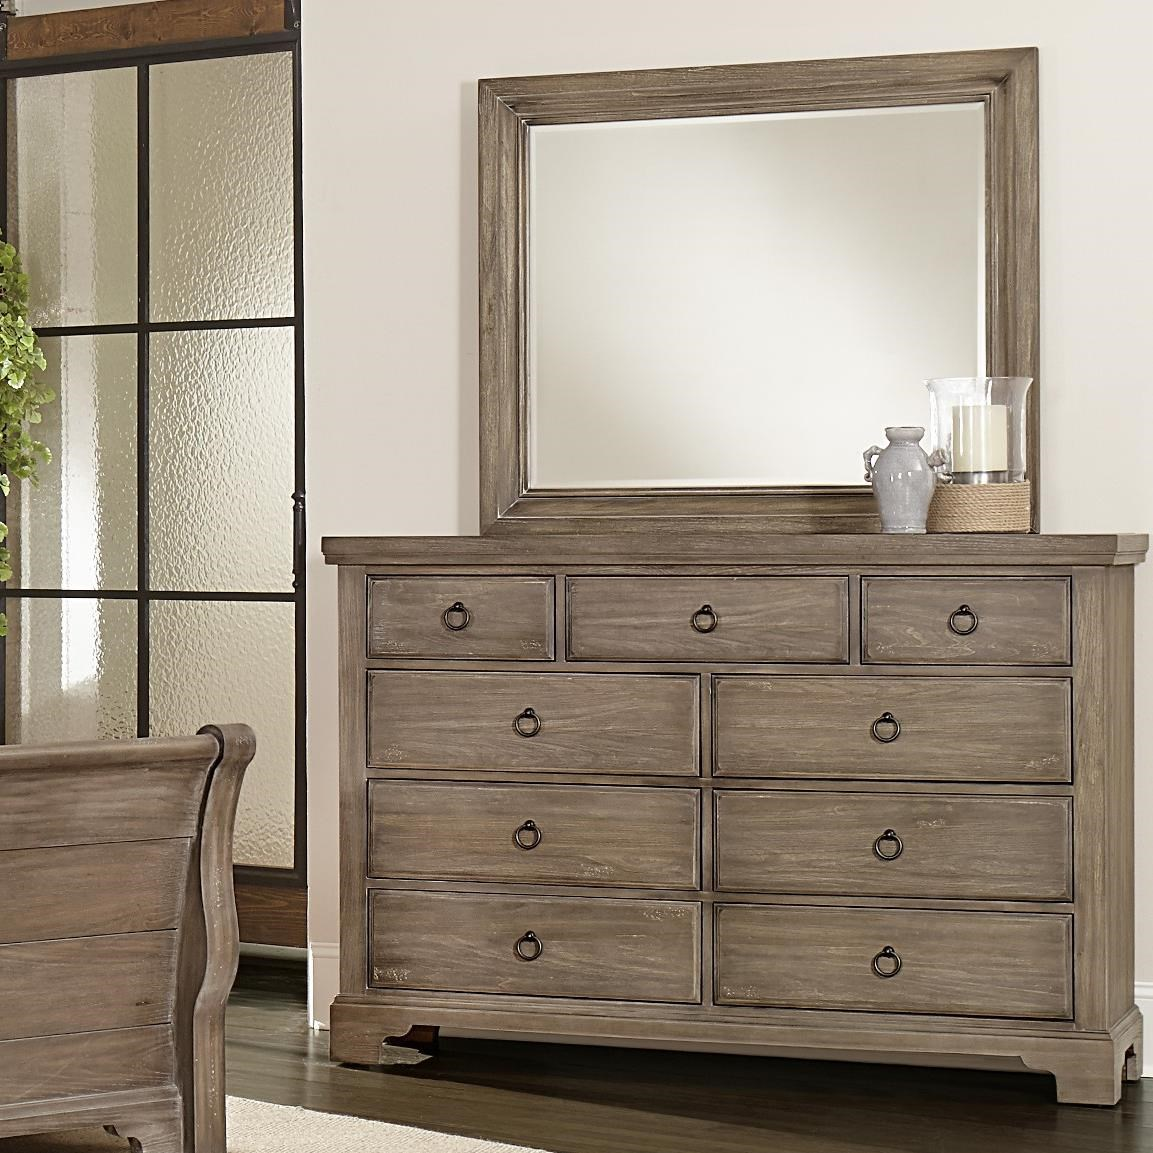 Exceptional Vaughan Bassett Whiskey Barrel Distressed Finish Chesser   9 Drawers U0026  Landscape Mirror